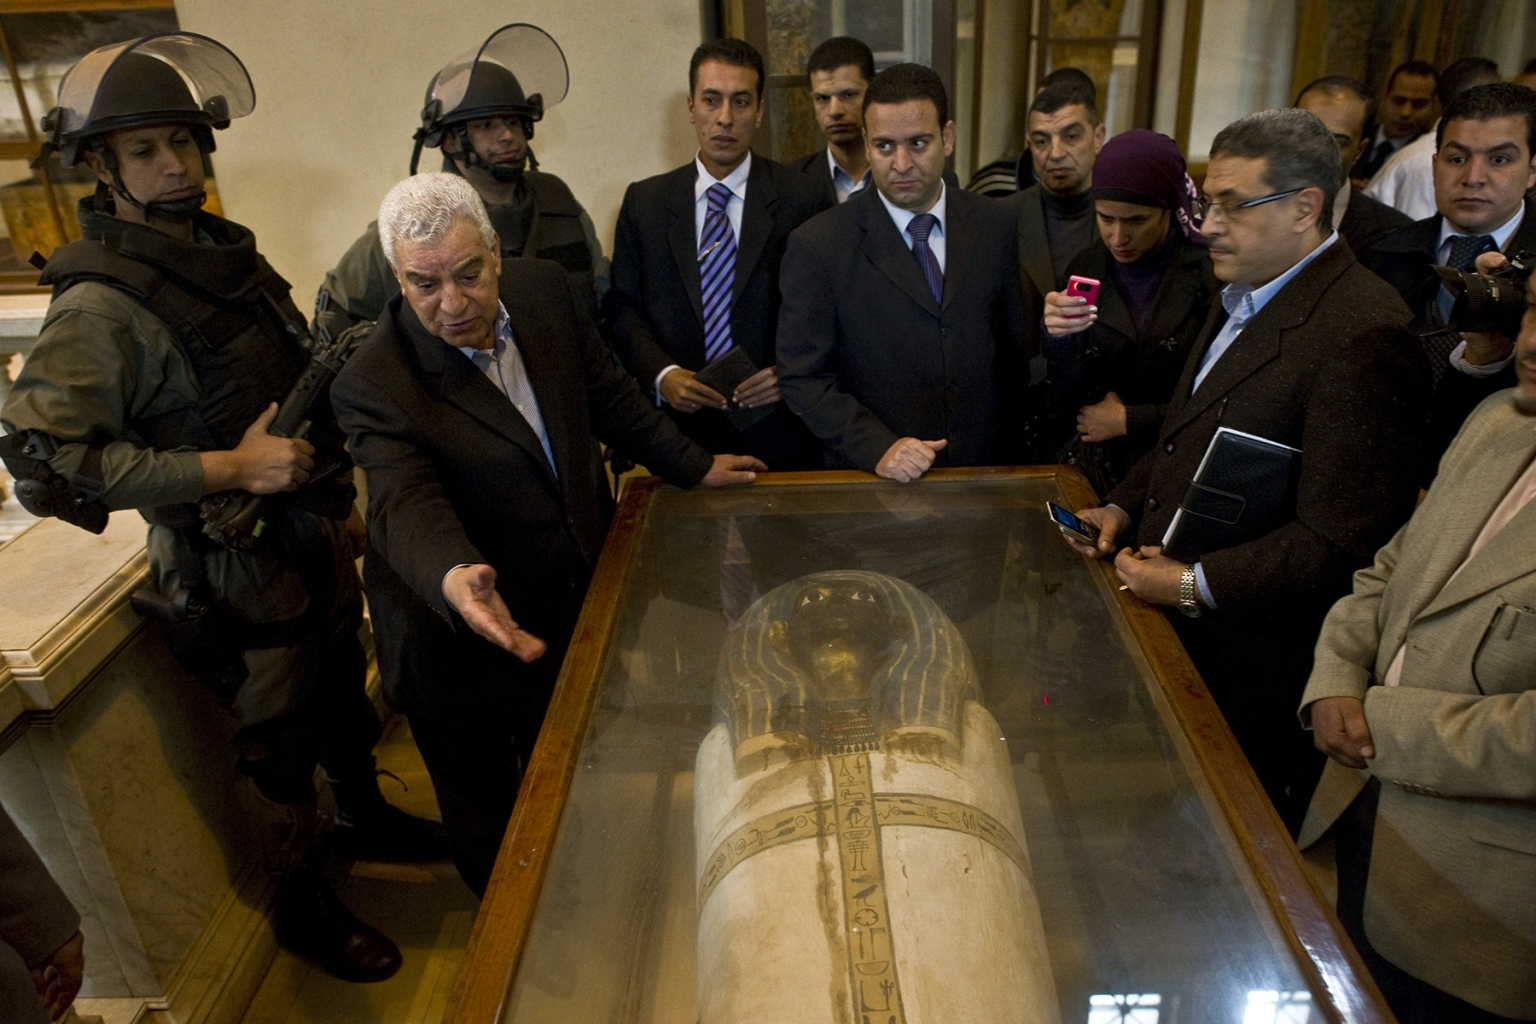 Egyptian state minister of antiquities Zahi Hawass shows one of the pieces damaged by protesters and repaired at the Egyptian Museum on Feb. 16, 2011. Arab Spring demonstrators broke into the museum in Cairo's Tahrir Square, shattering 13 display cases and at least 70 artifacts. (Pedro Ugarte/AFP/Getty Images)